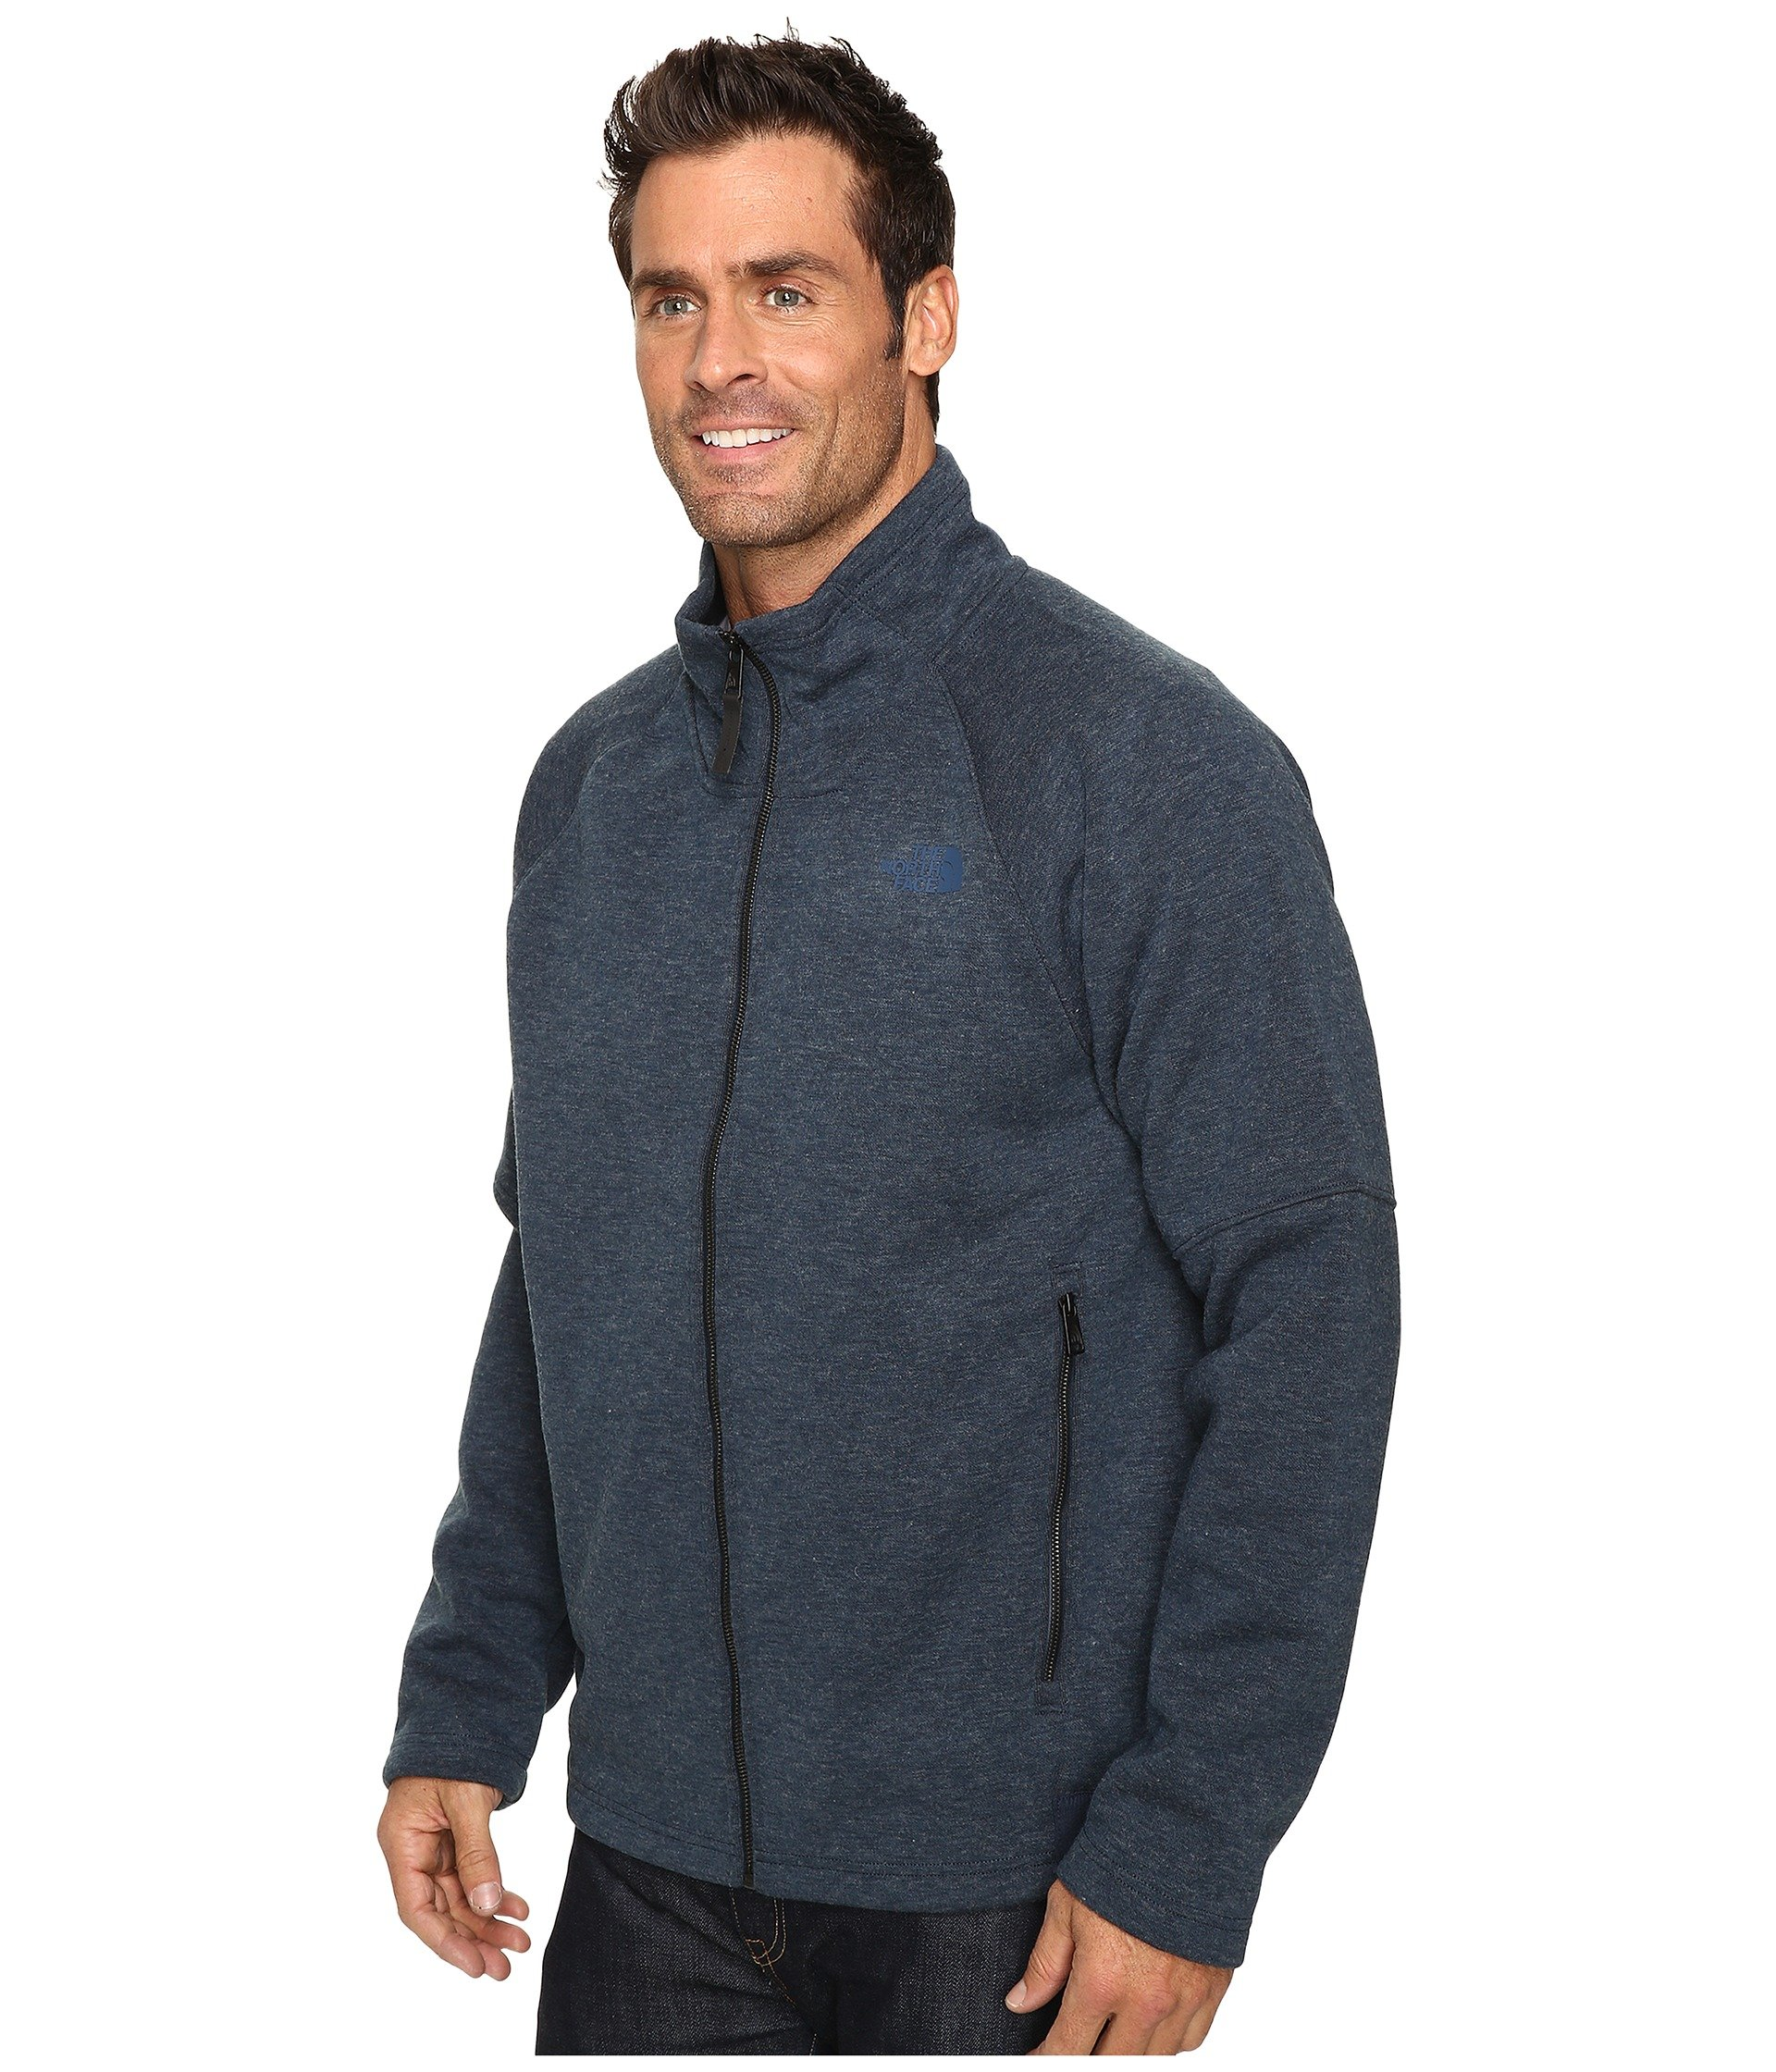 08bf1c5bb Свитер The North Face Trunorth Full Zip Urban Navy Heather/Urban Navy , L  (10081124)